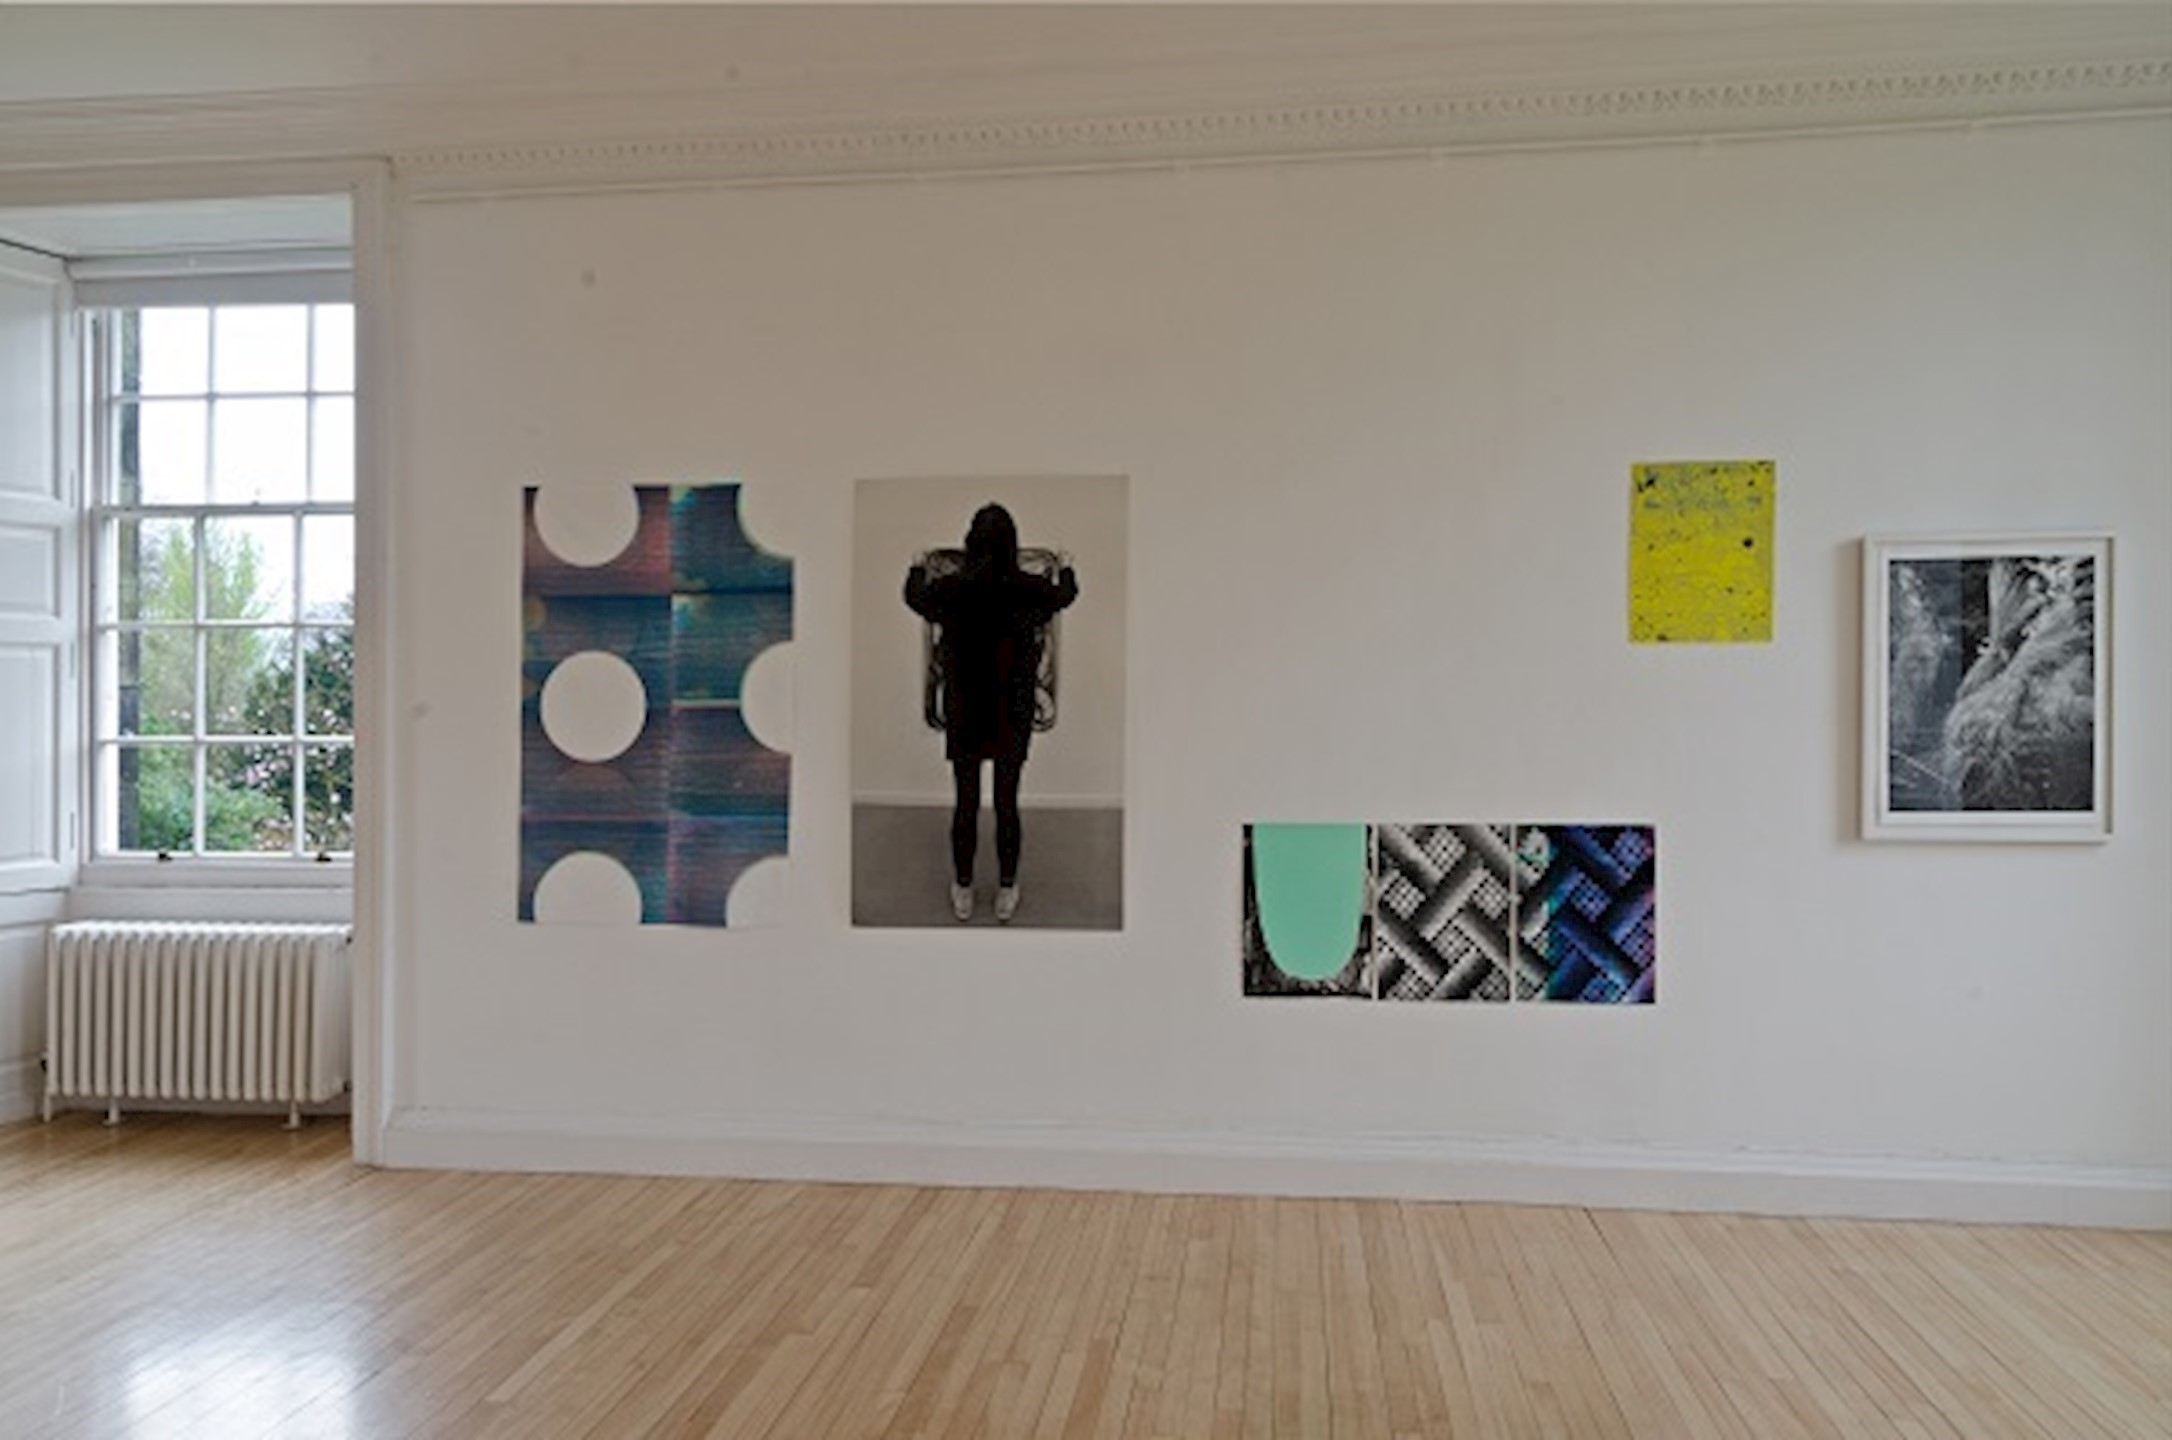 Ciara Phillips installation view, photograph by Michael Wolchover. Courtesy Royal Botanic Garden Edinburgh.